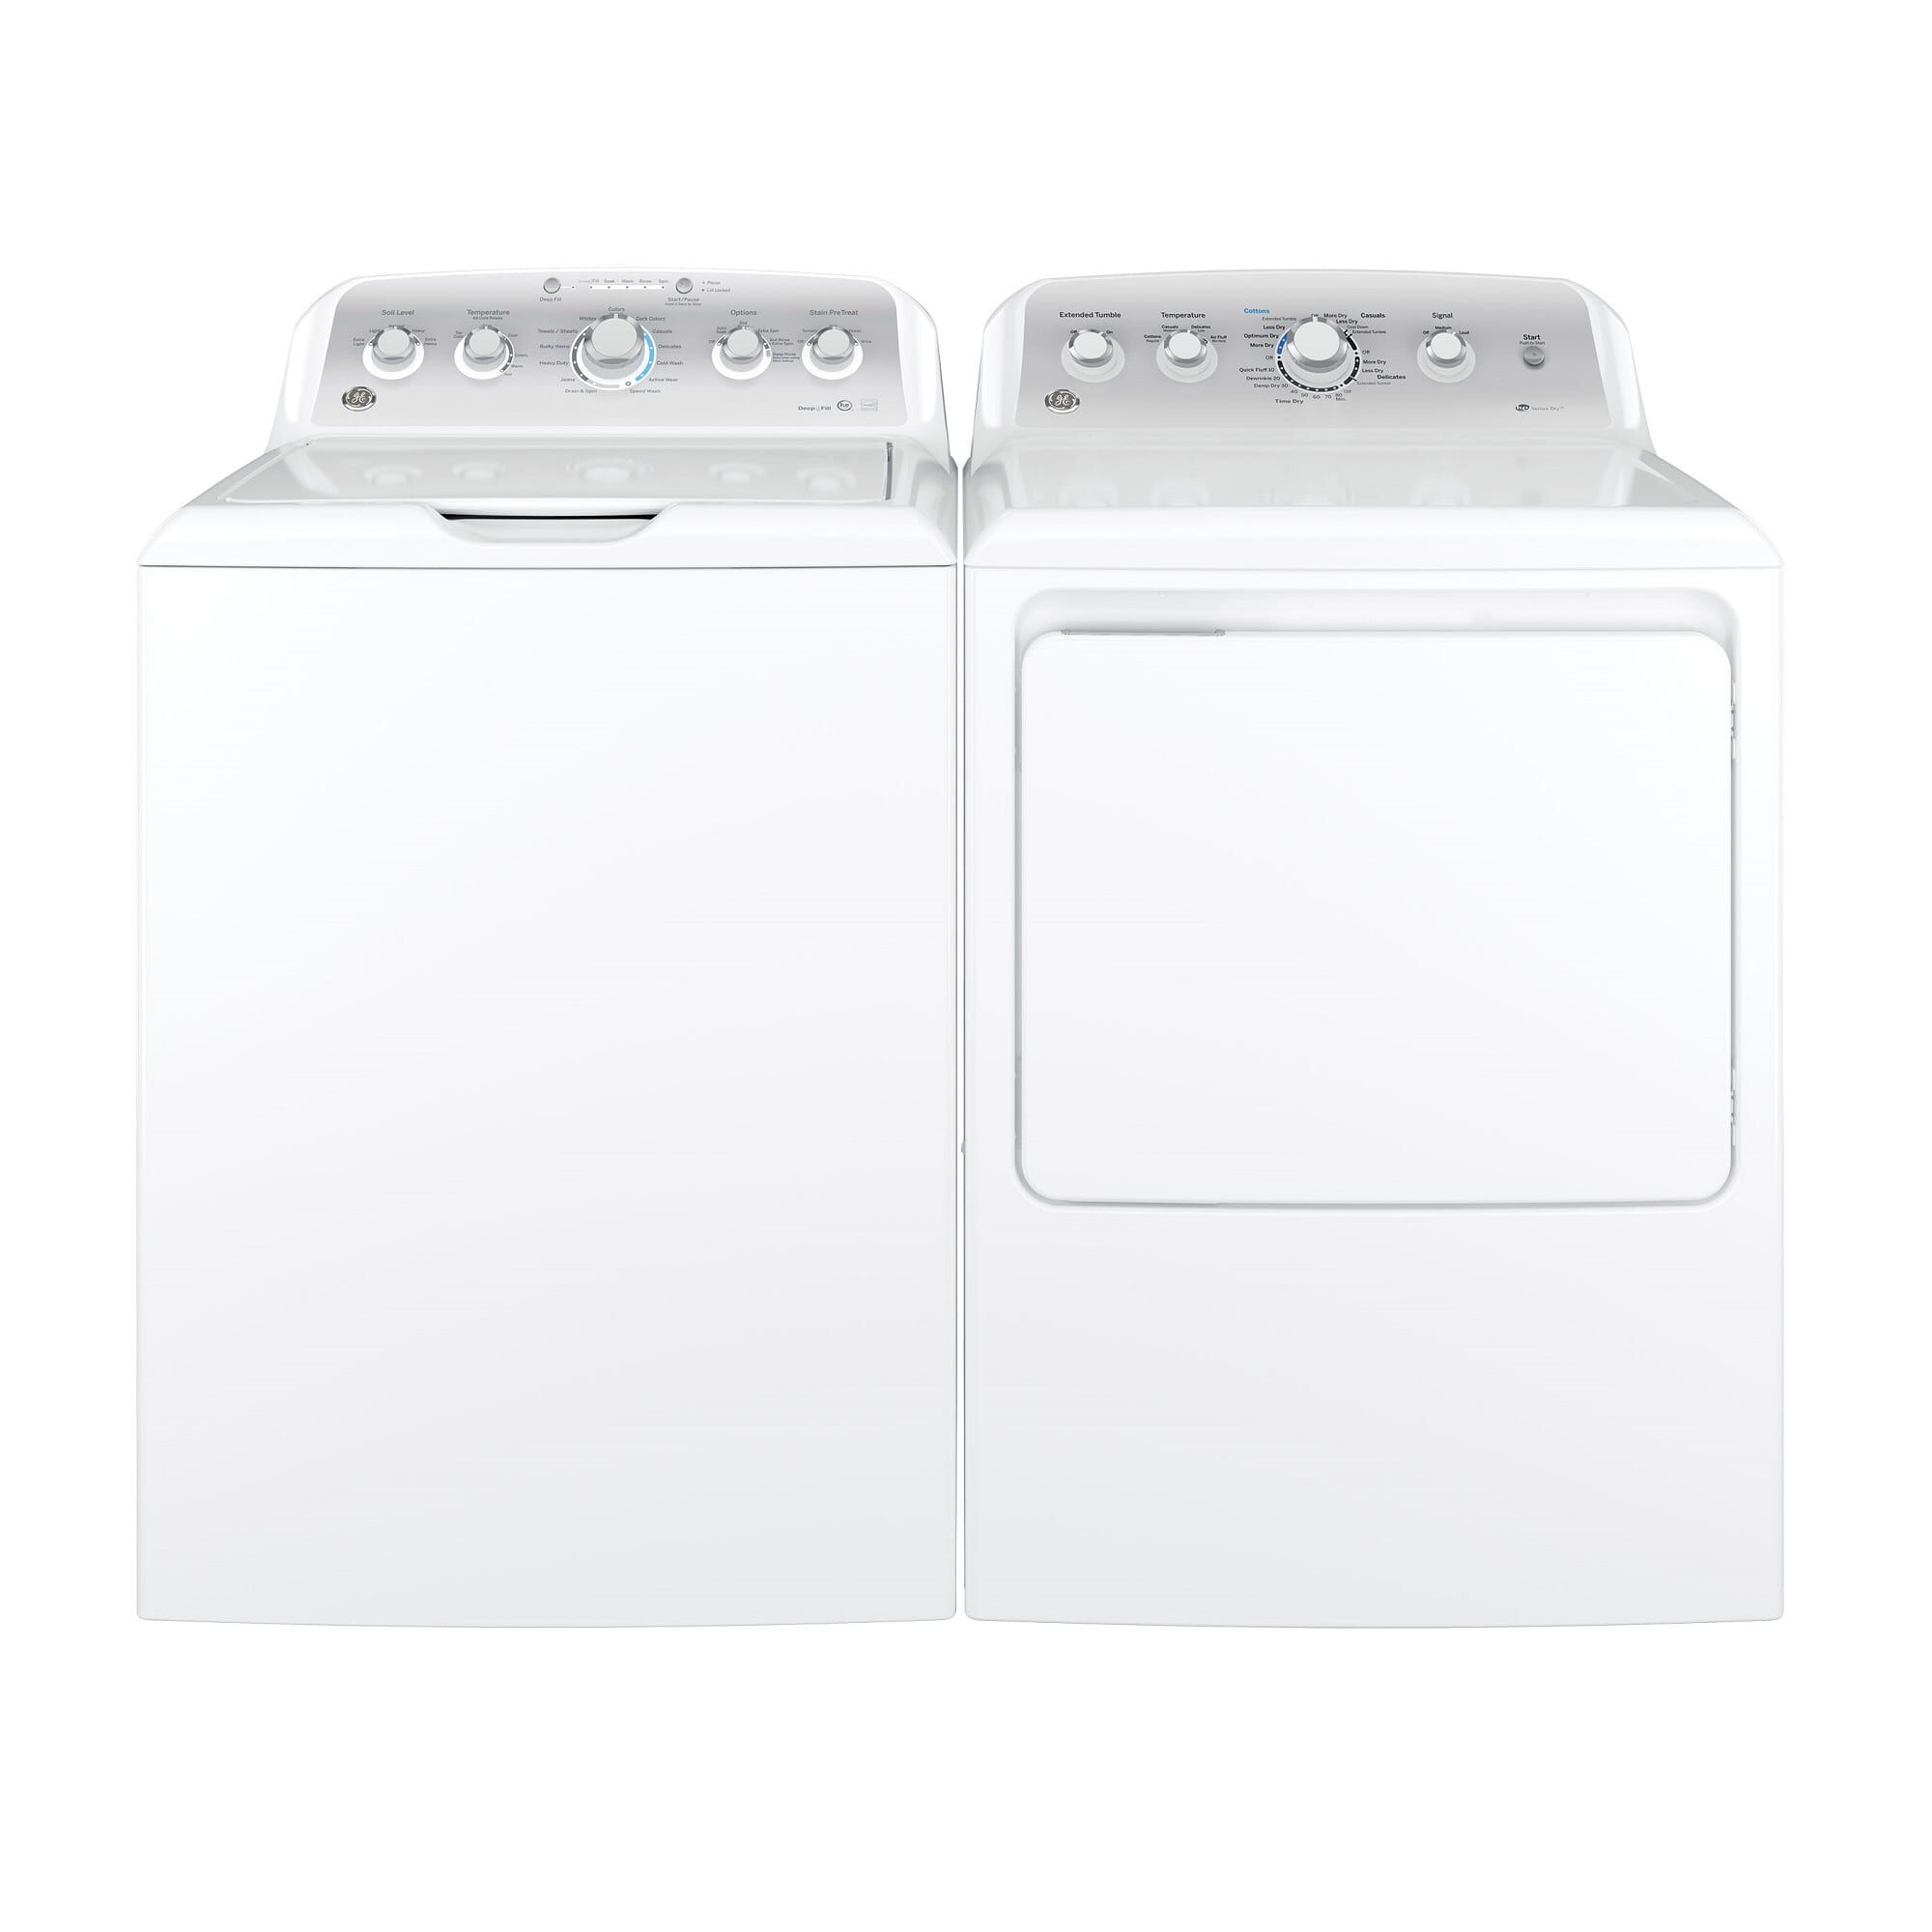 ge appliances washers dryers 4 4 cu ft he top load washer 7 2 cu ft electric dryer [ 1000 x 1000 Pixel ]